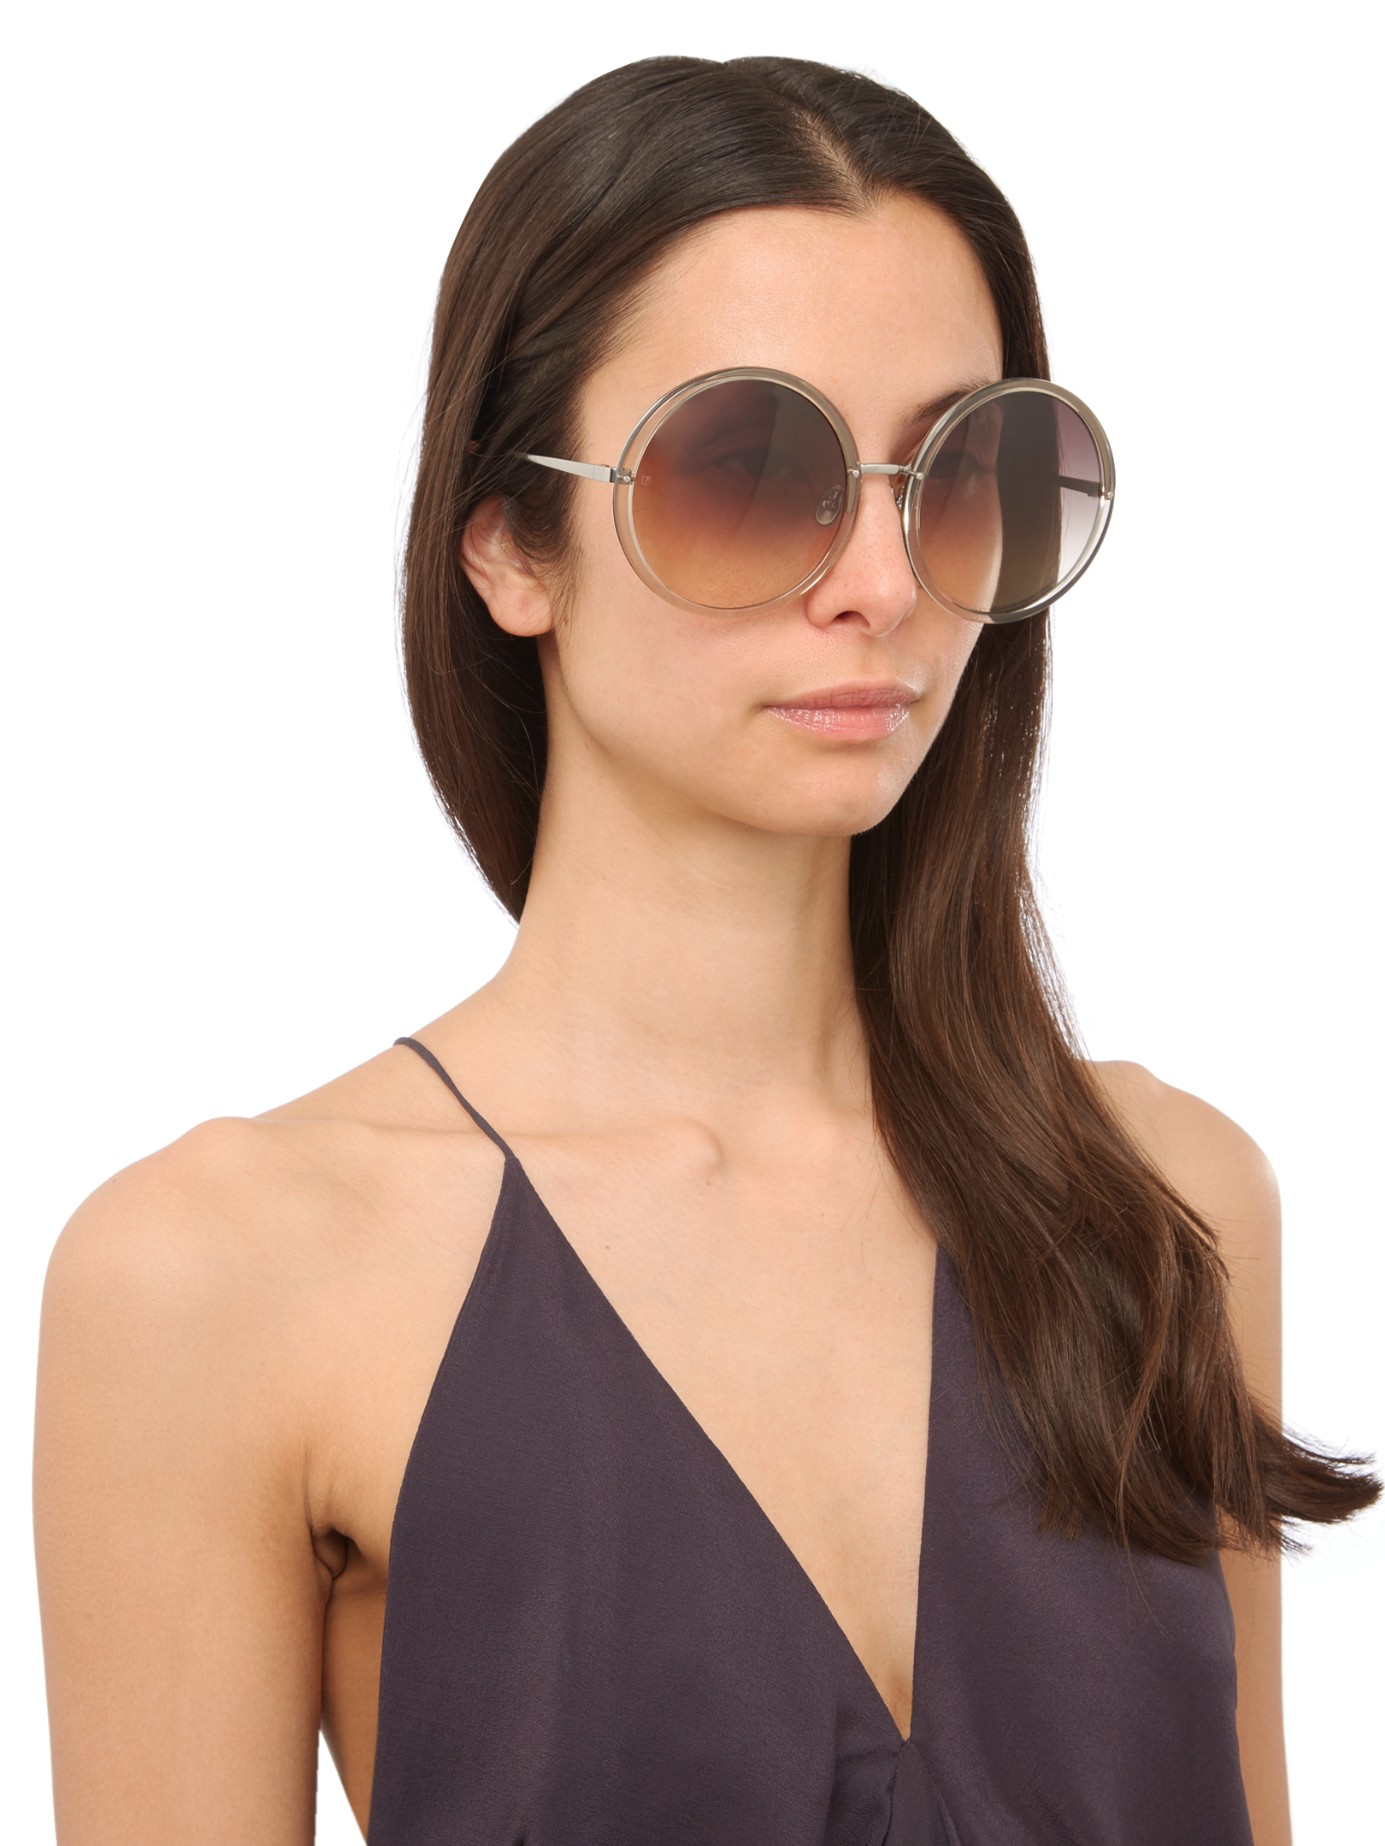 772514d3e3733 Linda Farrow Oversized Round Sunglasses in Natural - Lyst